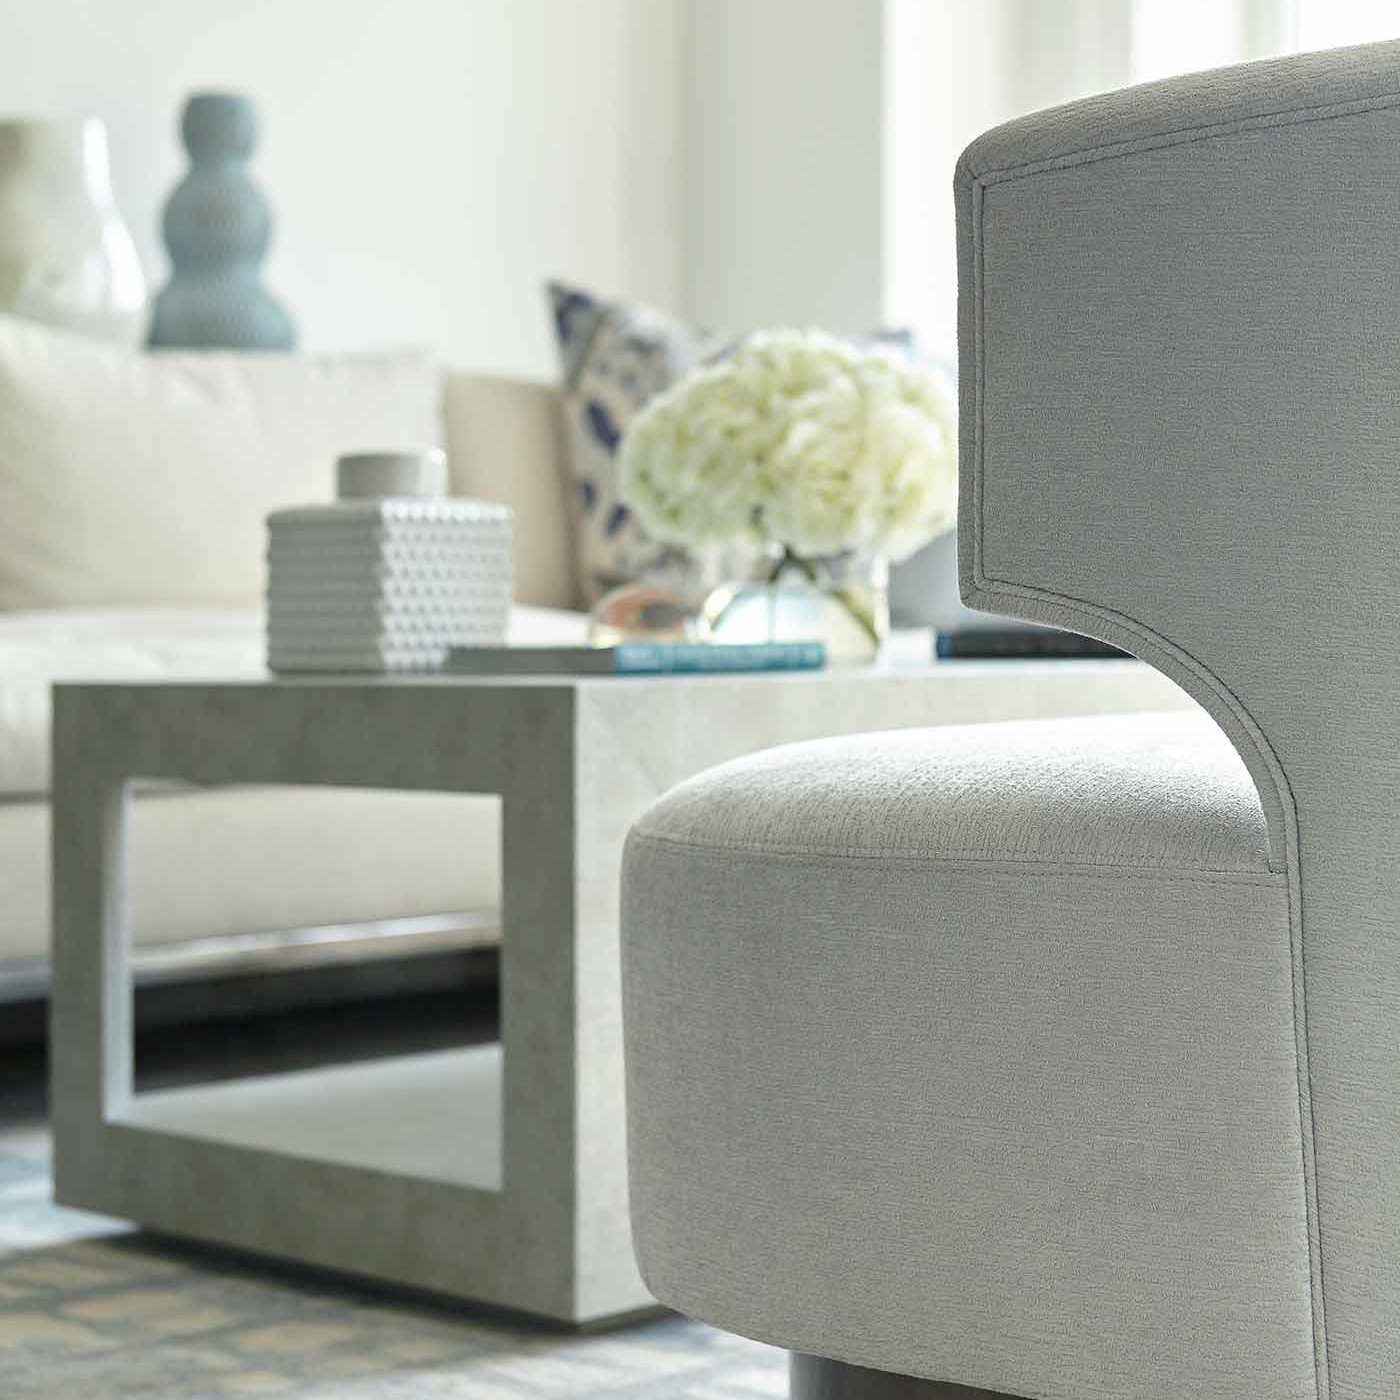 Creamy, linen-blend sofa in a NYC apartment living room designed by Darci Hether New York